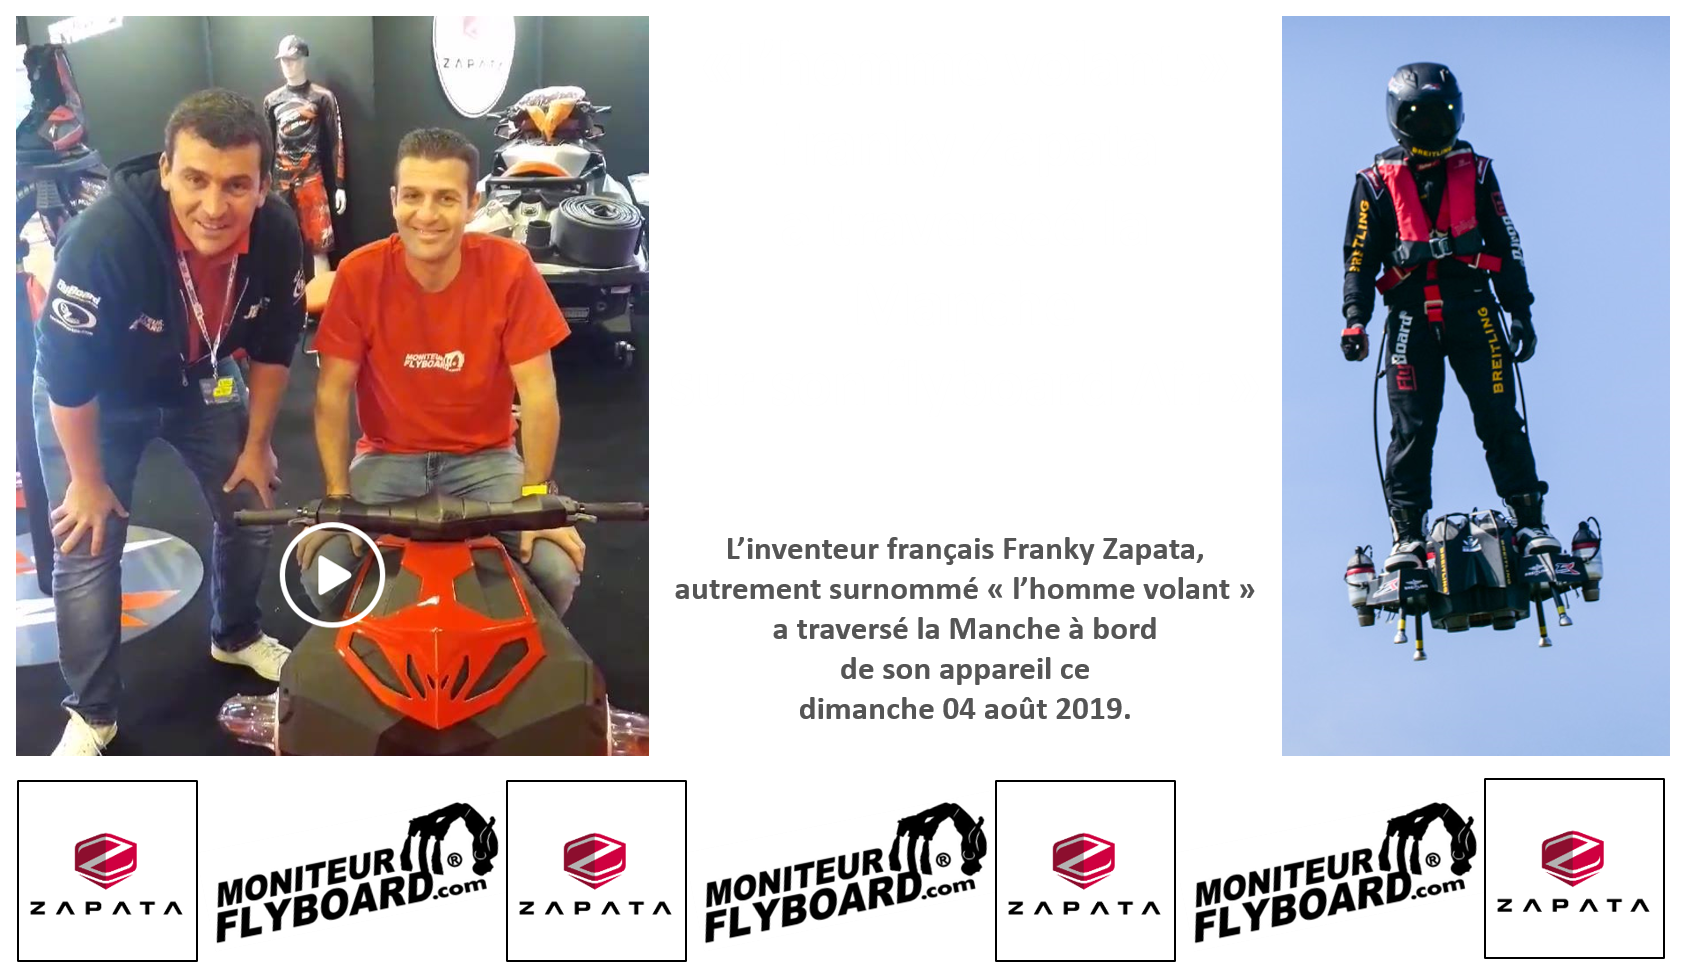 zapata traversee manche flyboard air